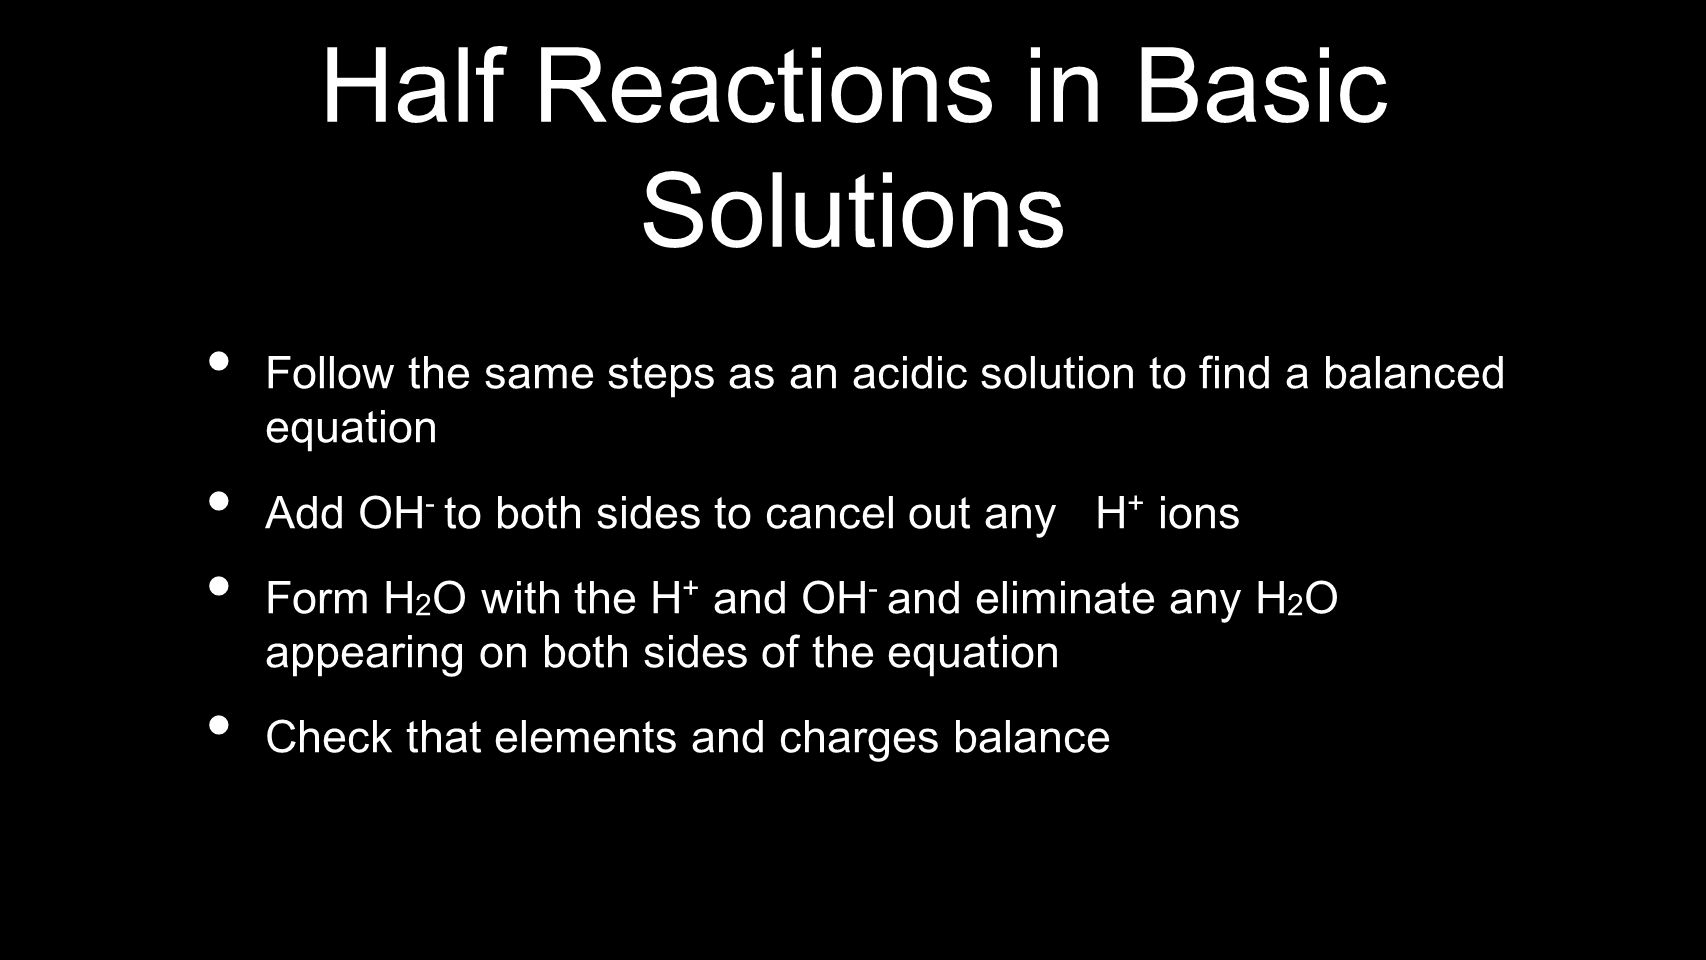 Half Reactions in Basic Solutions